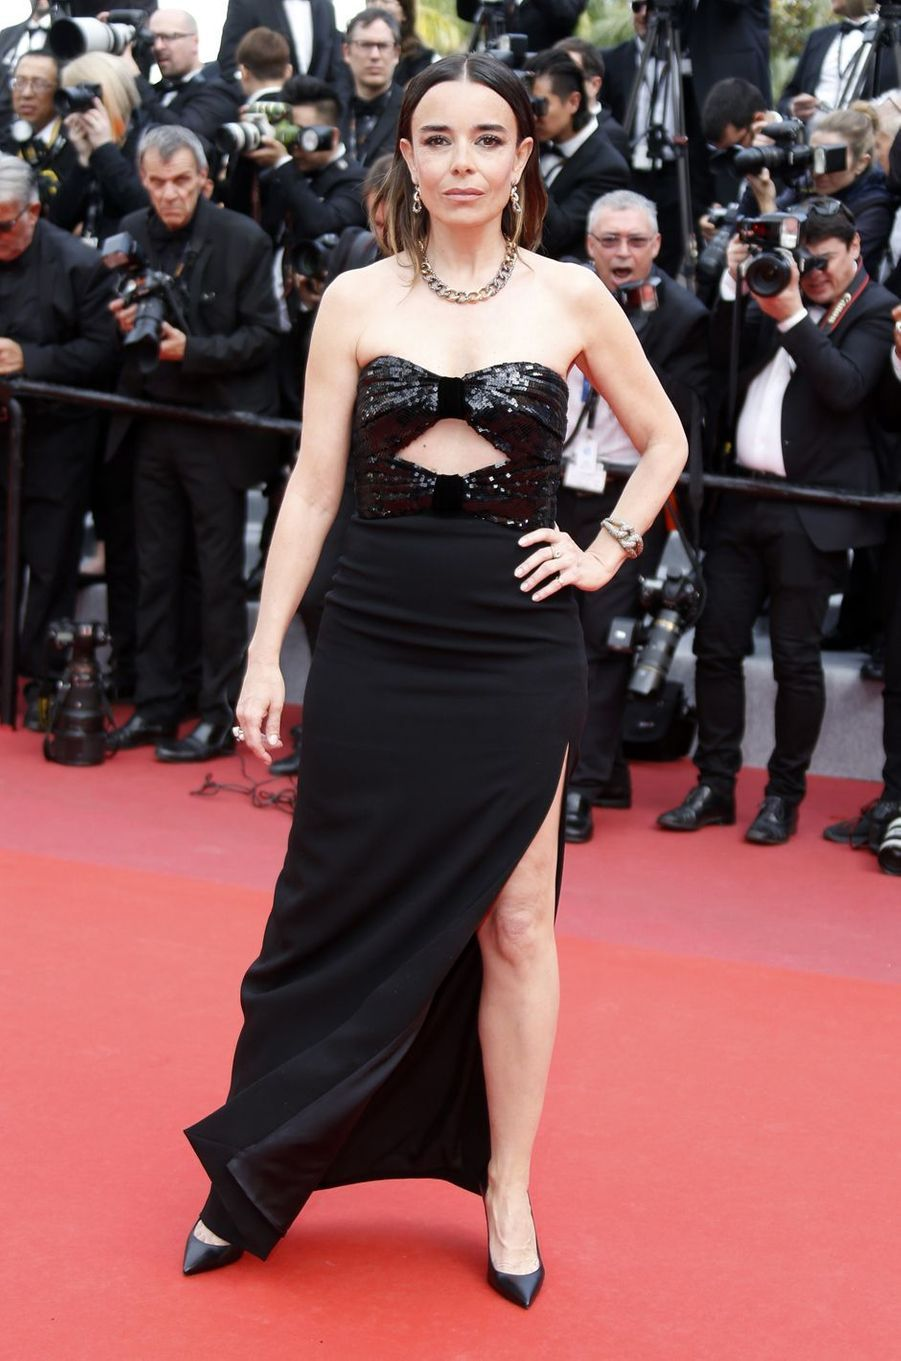 Elodie Bouchez lors de la montée des marches du film «Once Upon A Time In Hollywood» à Cannes le 21 mai 2019